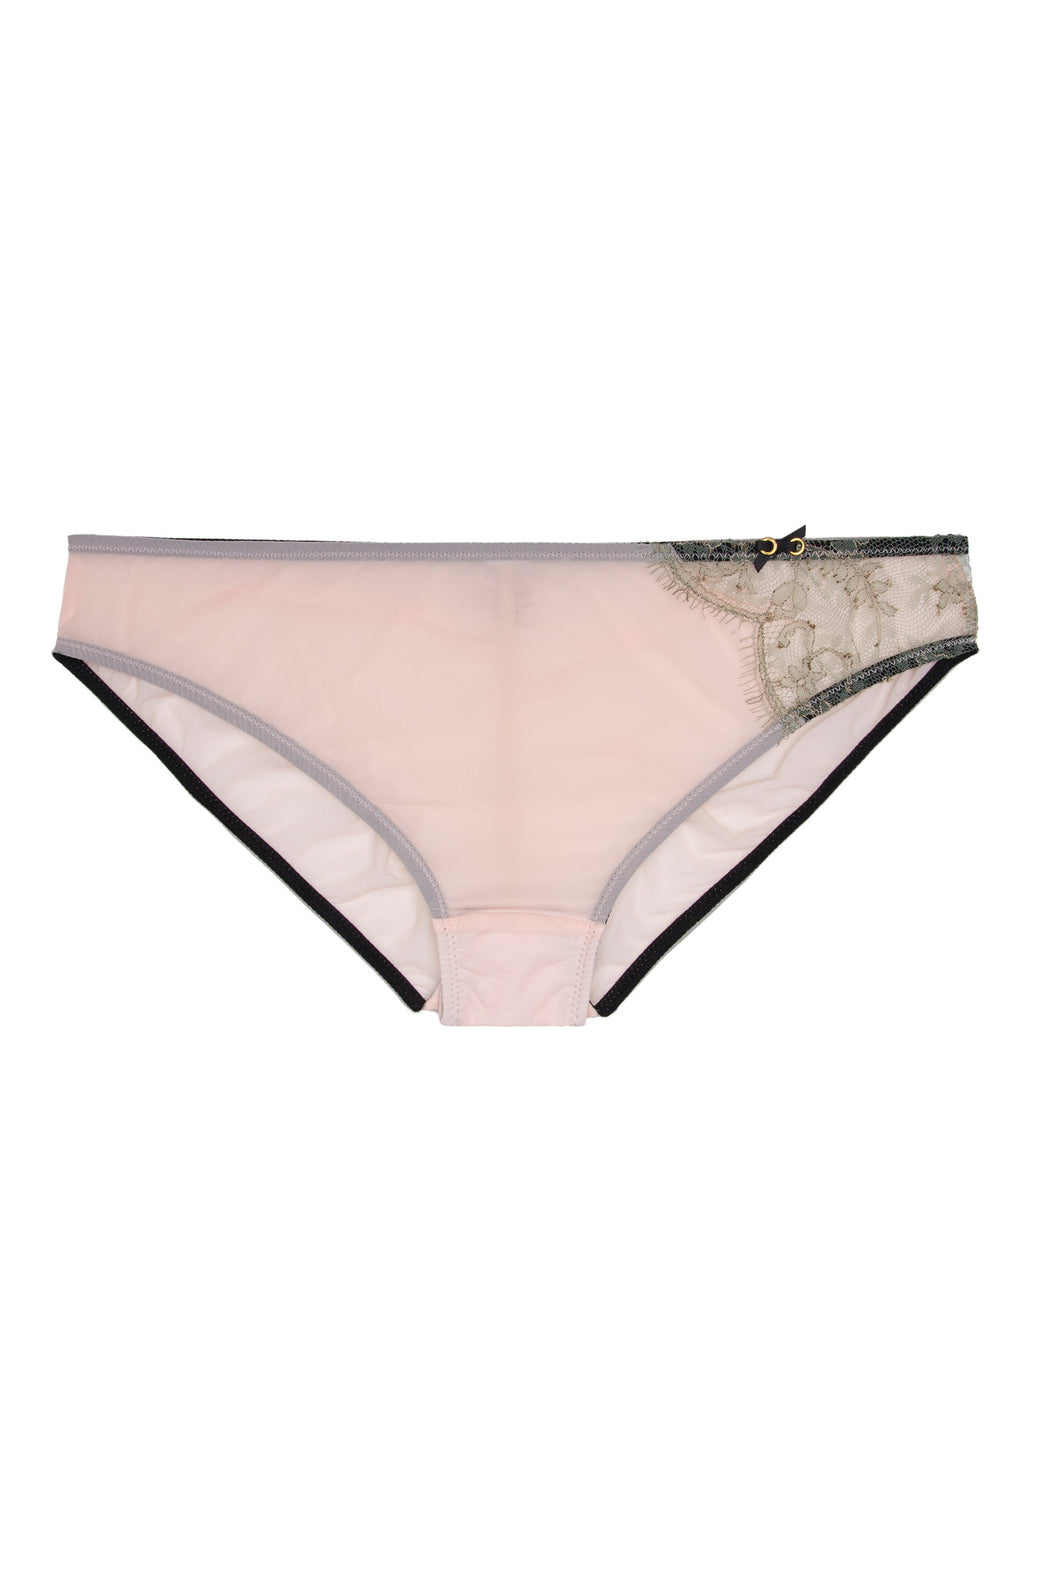 Pink and lace Isadora Brief by Lost in Wonderland workingirls lingerie